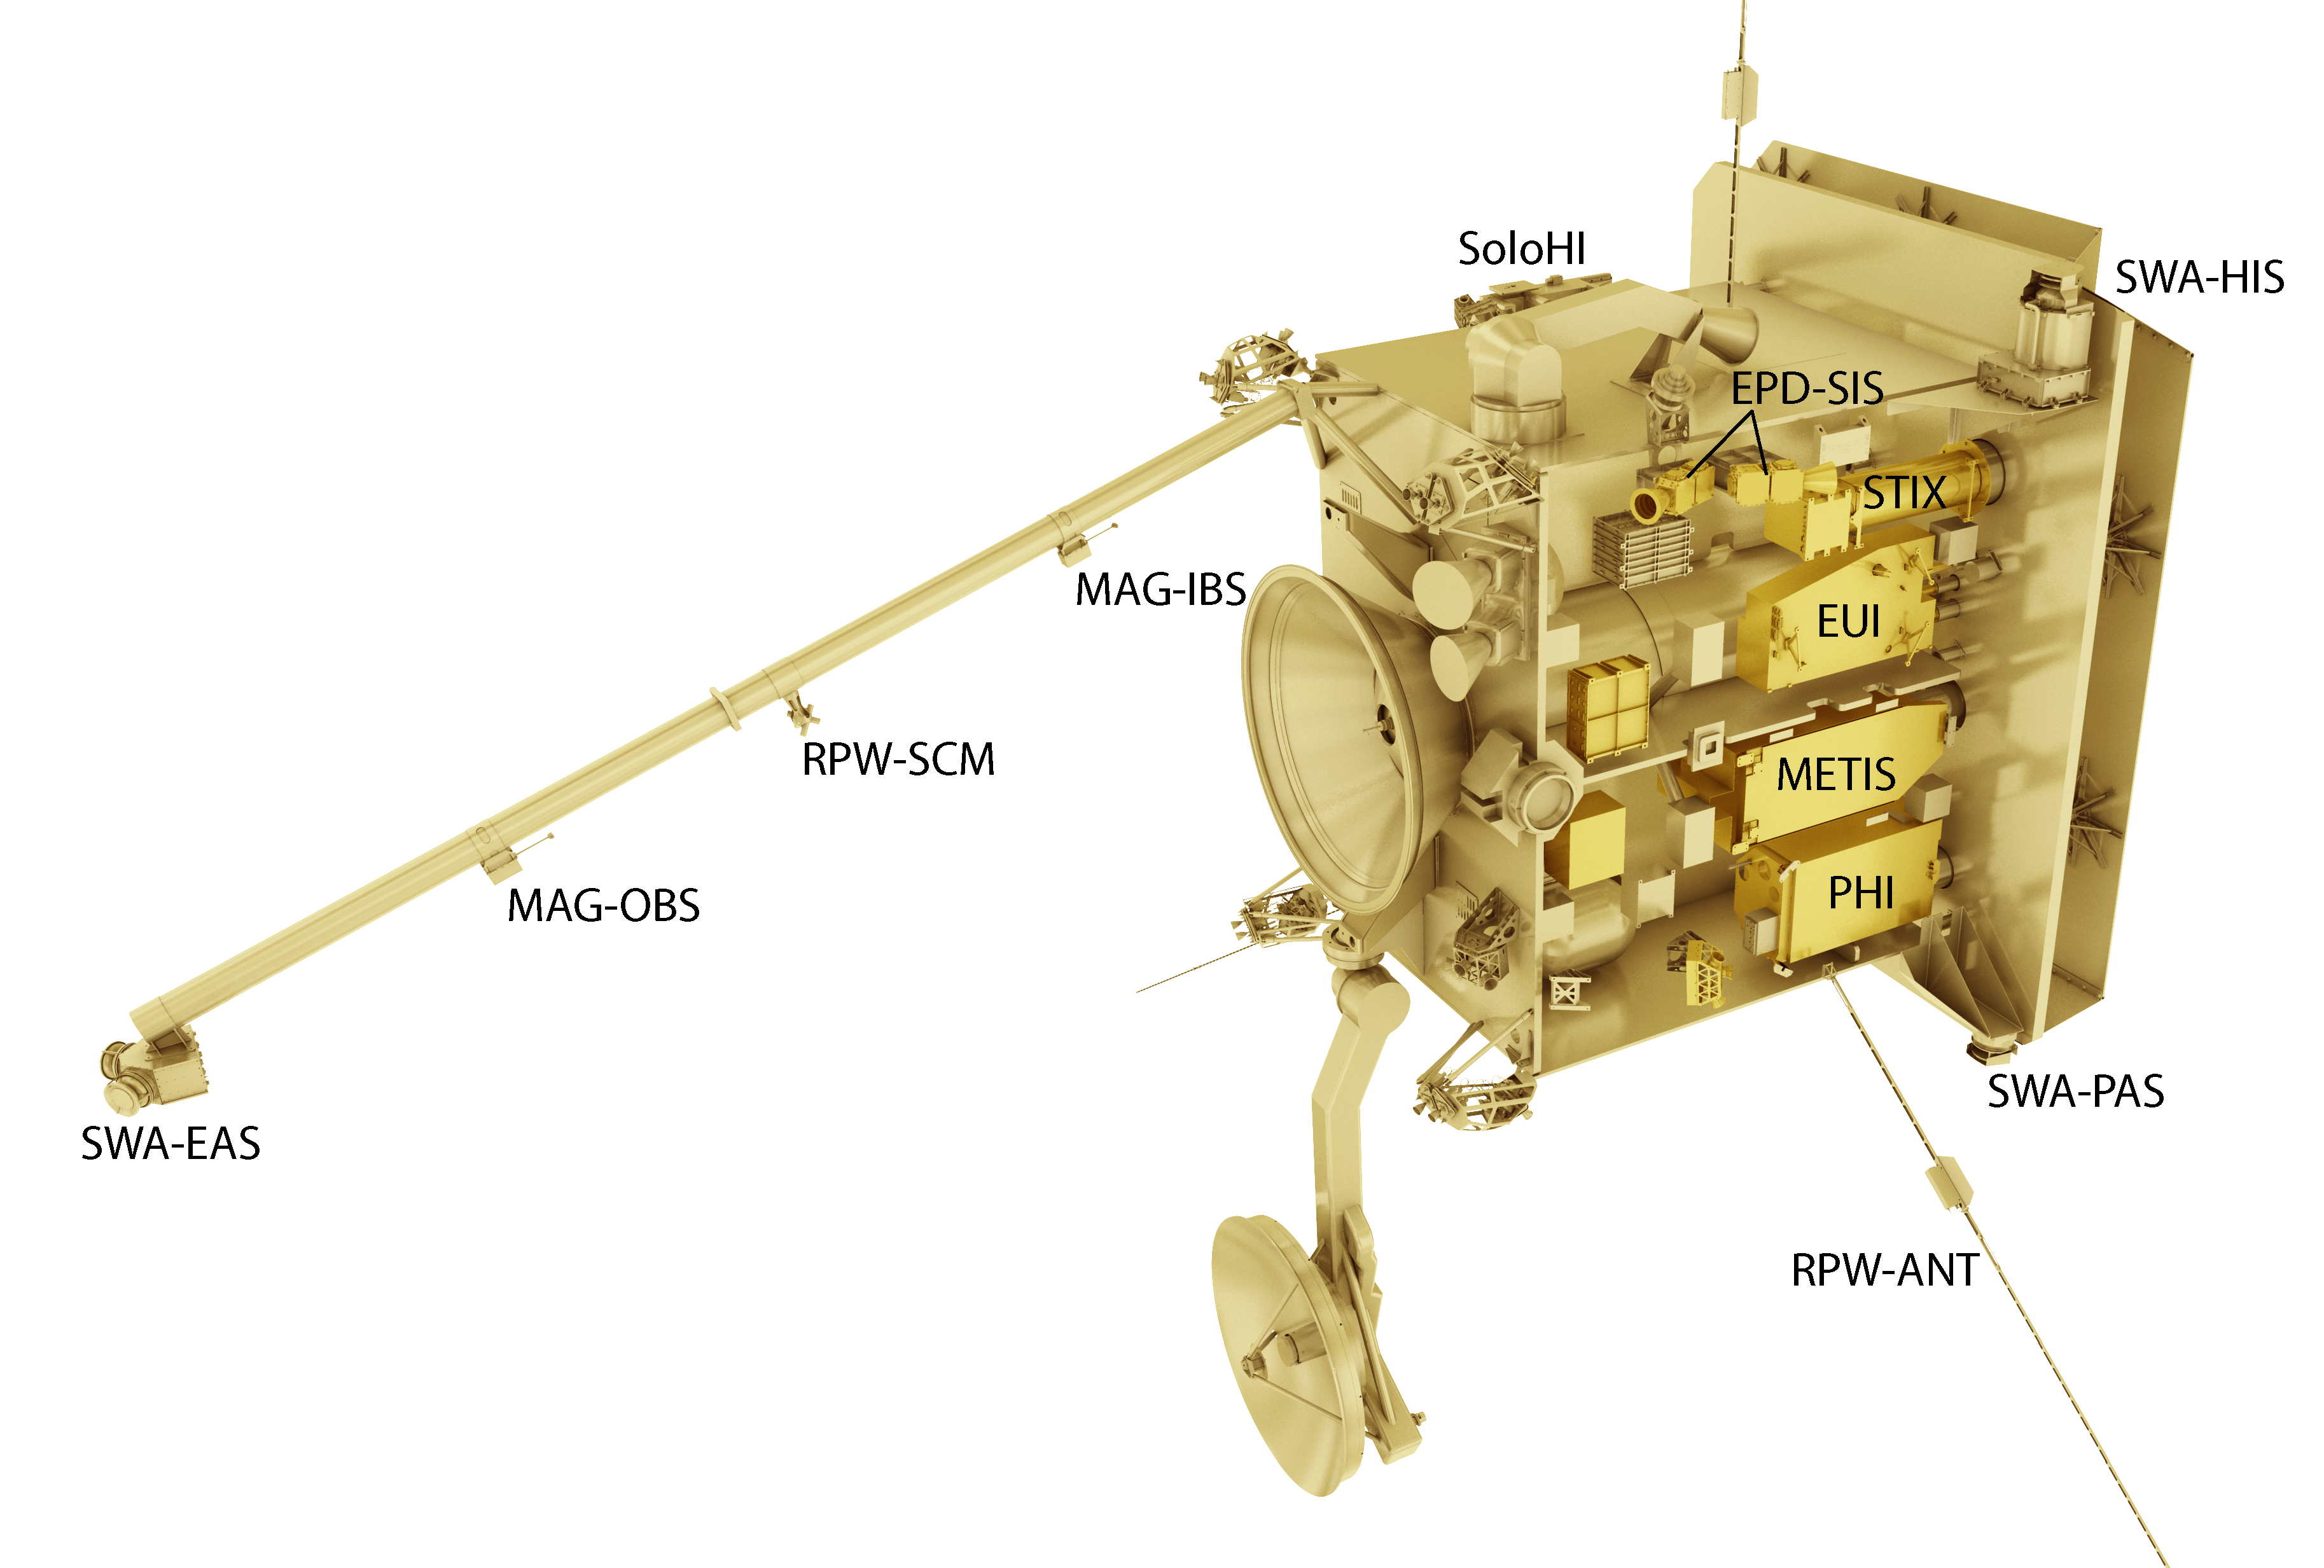 1567217017614-Solar_Orbiter_payload_annotated.jpg